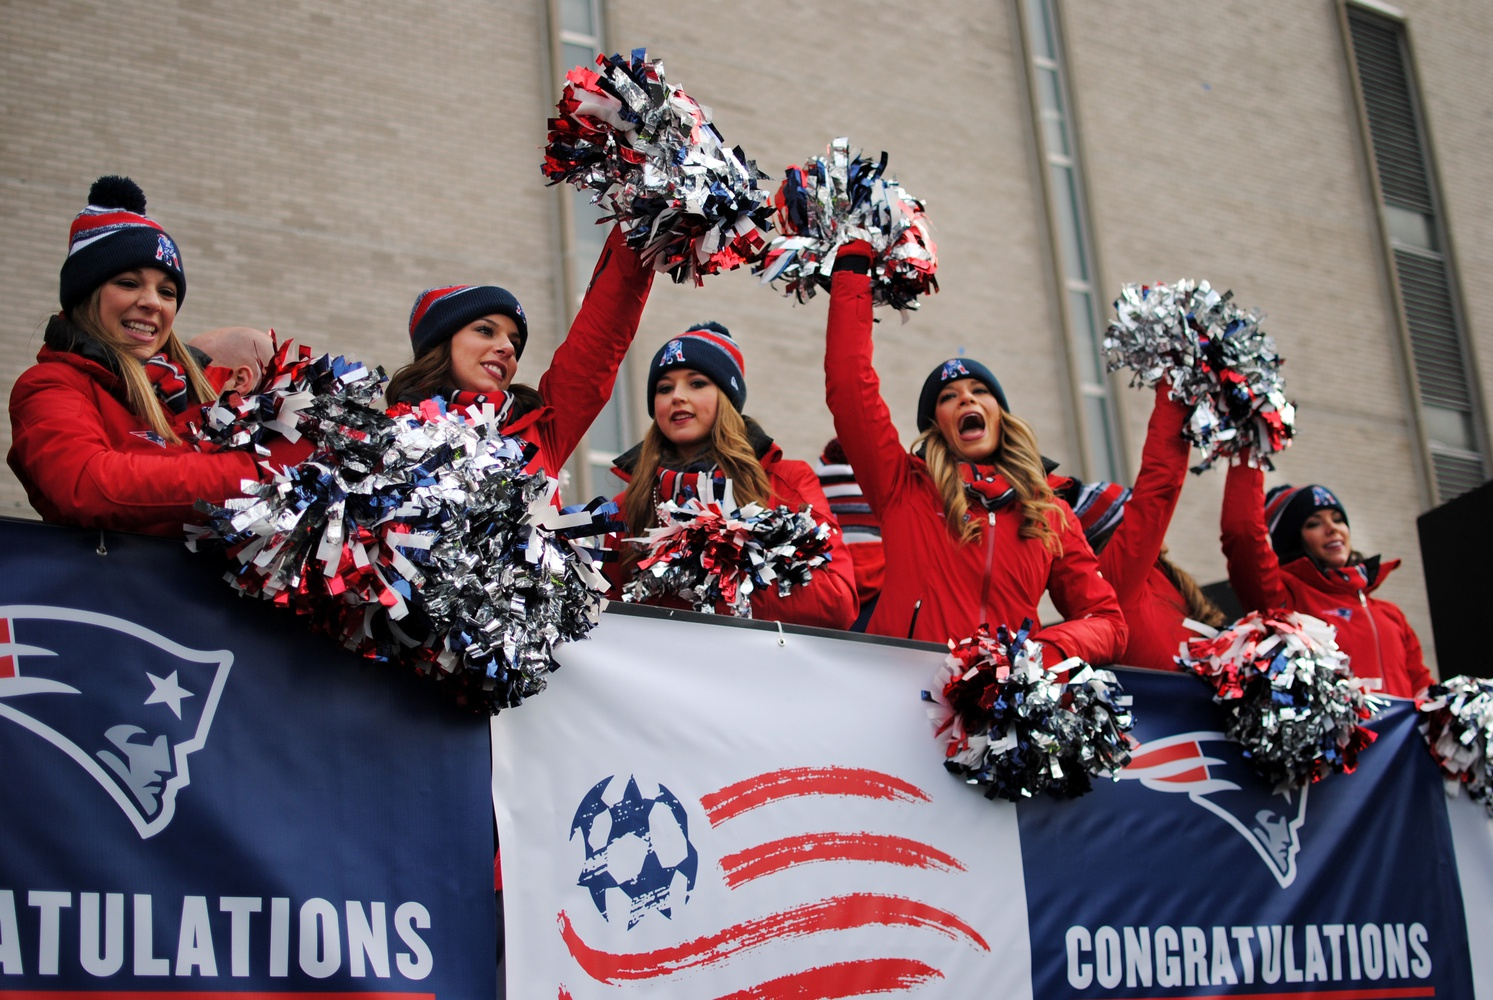 The Patriots cheerleaders celebrate the team's championship win during the Super Bowl parade outside Boston Commons on Wednesday.